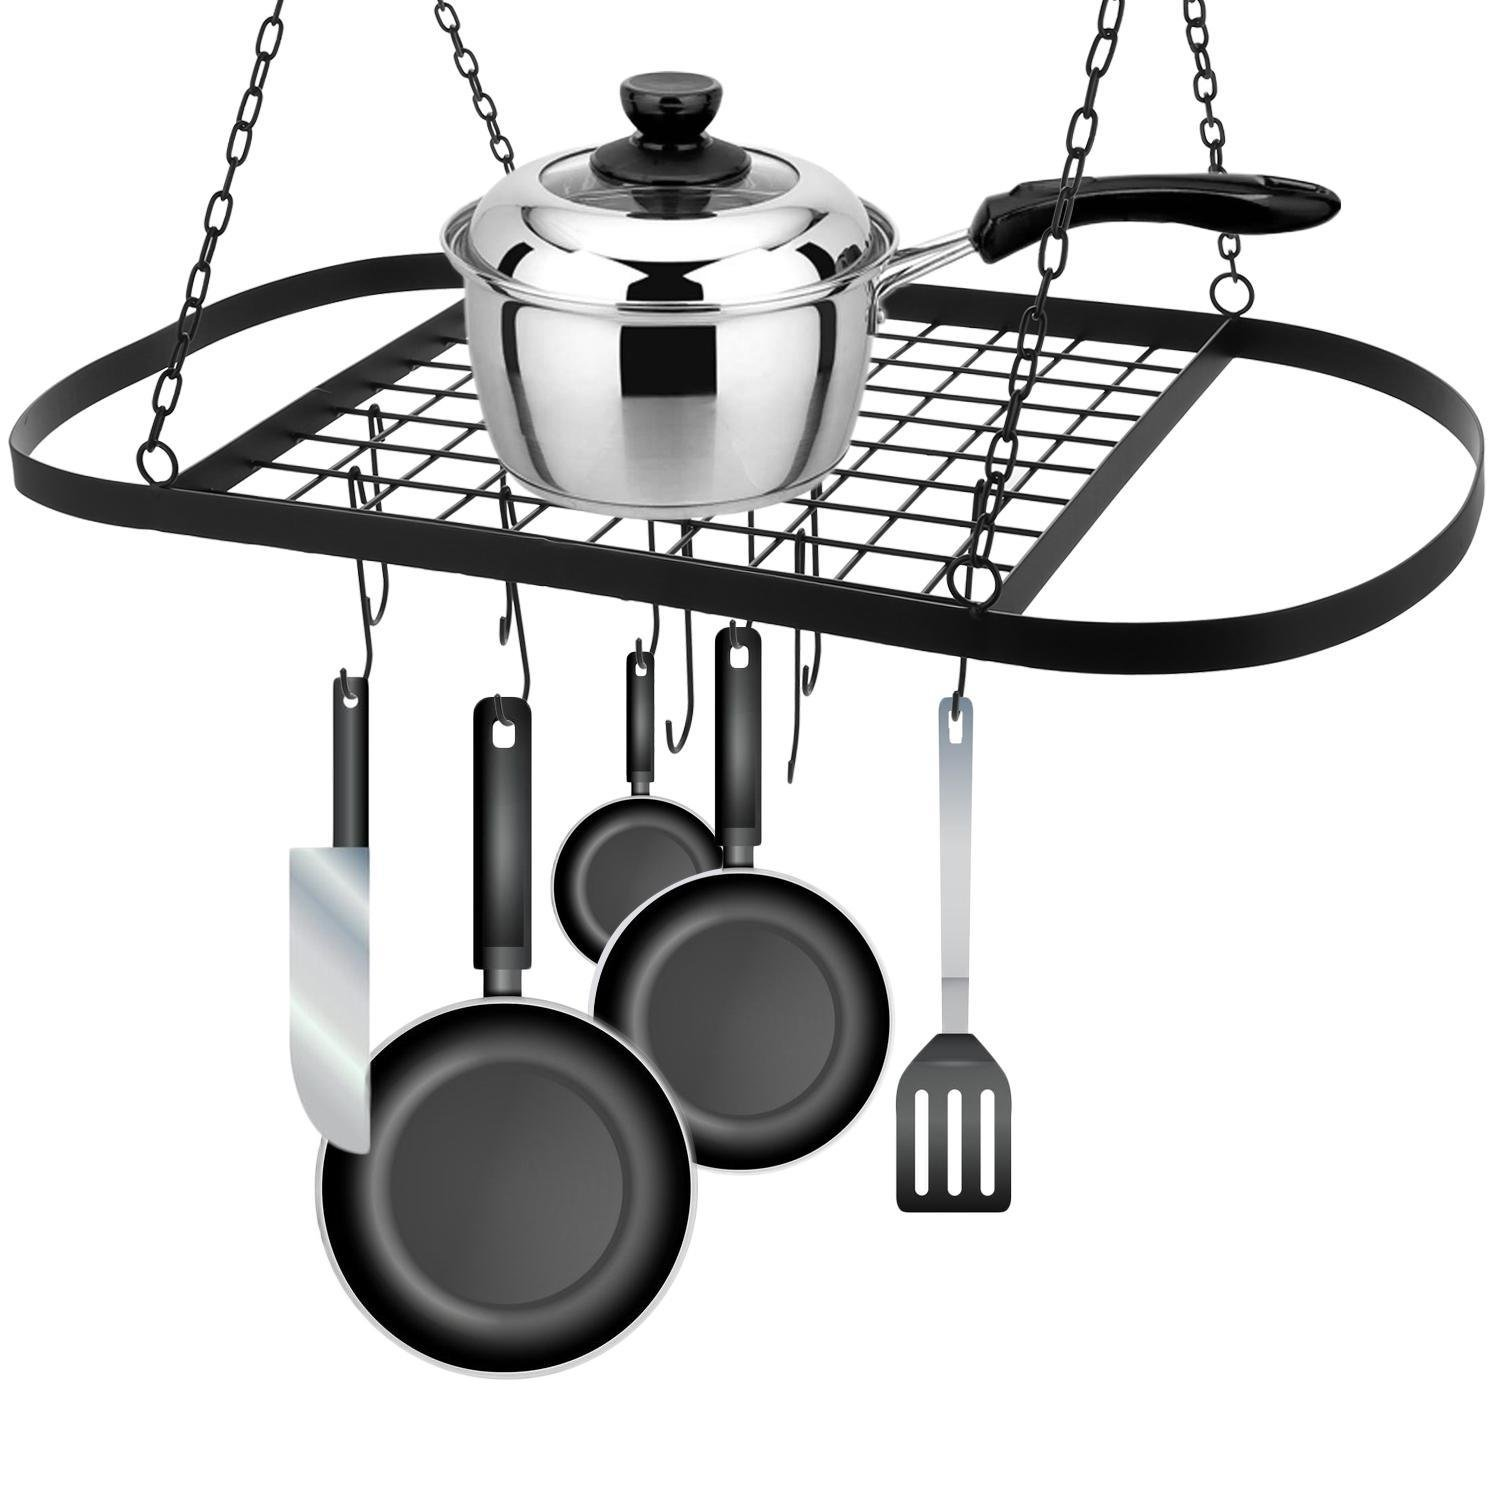 Iron Hanging Pot Holder with Hook, Kitchen Hanger Pots and Pans Rack Organizer to Storage Utility Cookware (31.1 x 16.5 x 19.7inch)